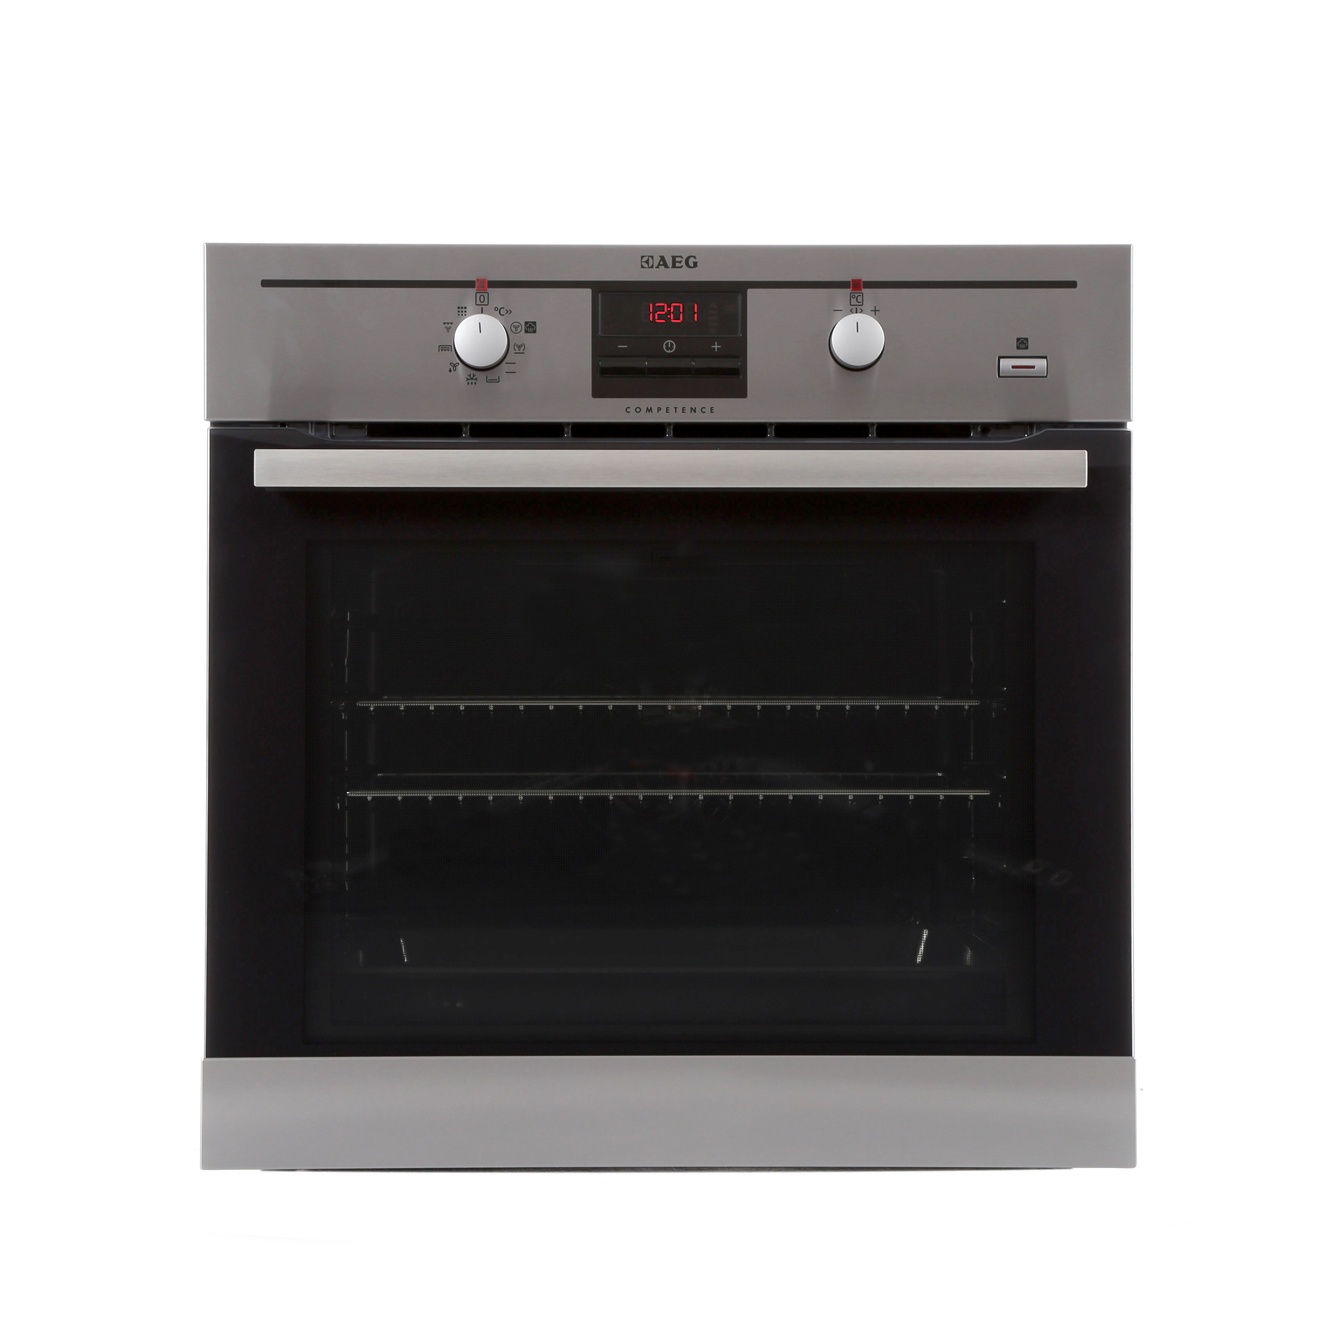 aeg bp330306km single built in electric oven stainless. Black Bedroom Furniture Sets. Home Design Ideas